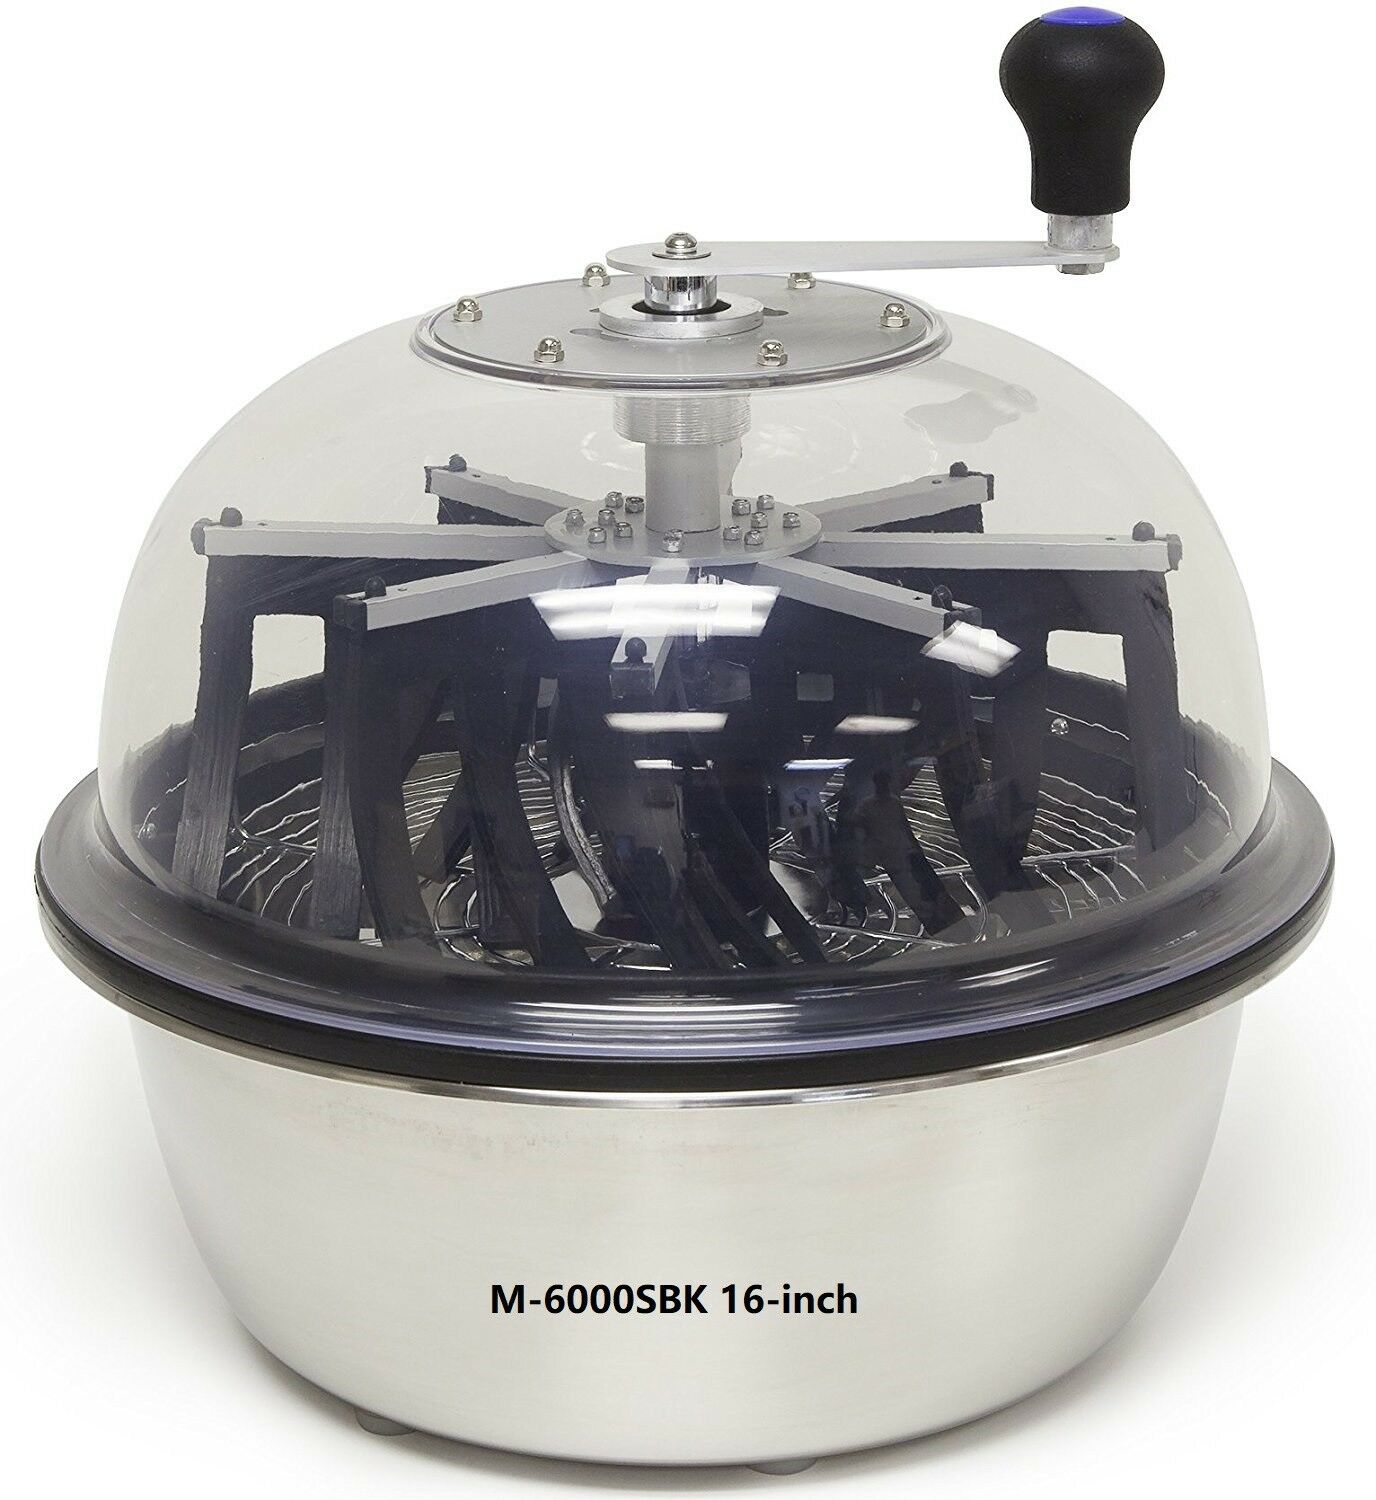 VR GROW the clean cut M-6000SBK Series Bowl Leaf Trimmer 16-inch Hydroponic Spin